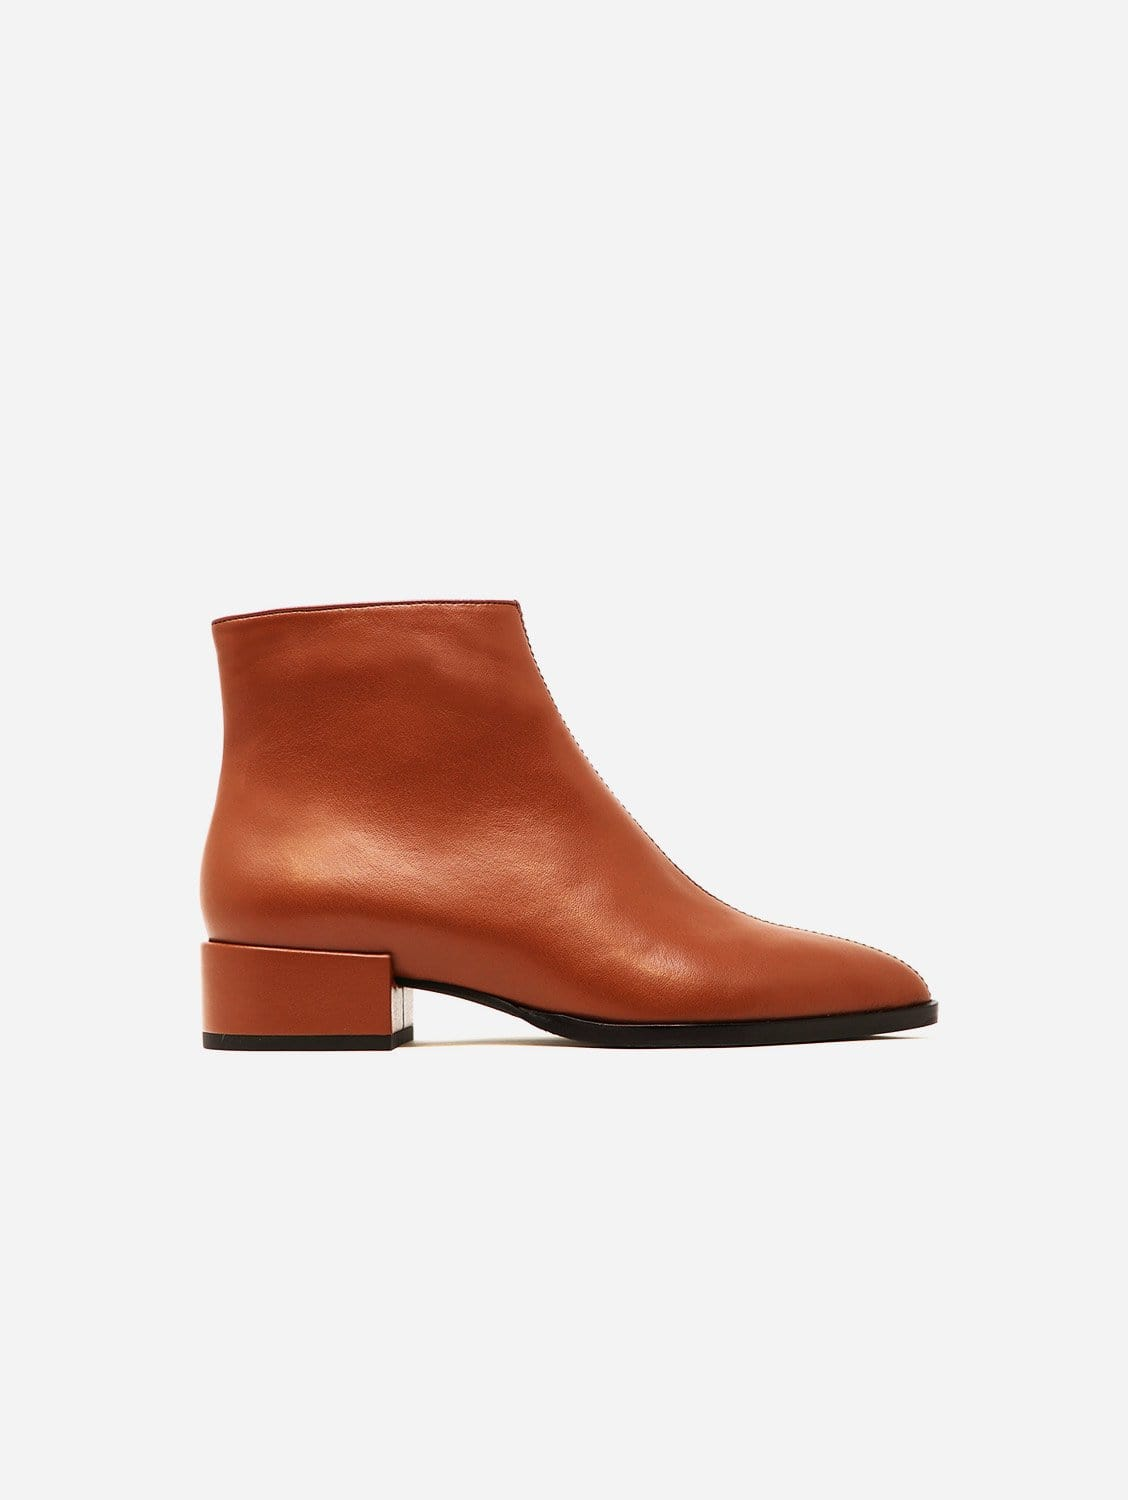 Cassidy Recycled Fiber Vegan Nappa Leather Boot | Saddle Brown